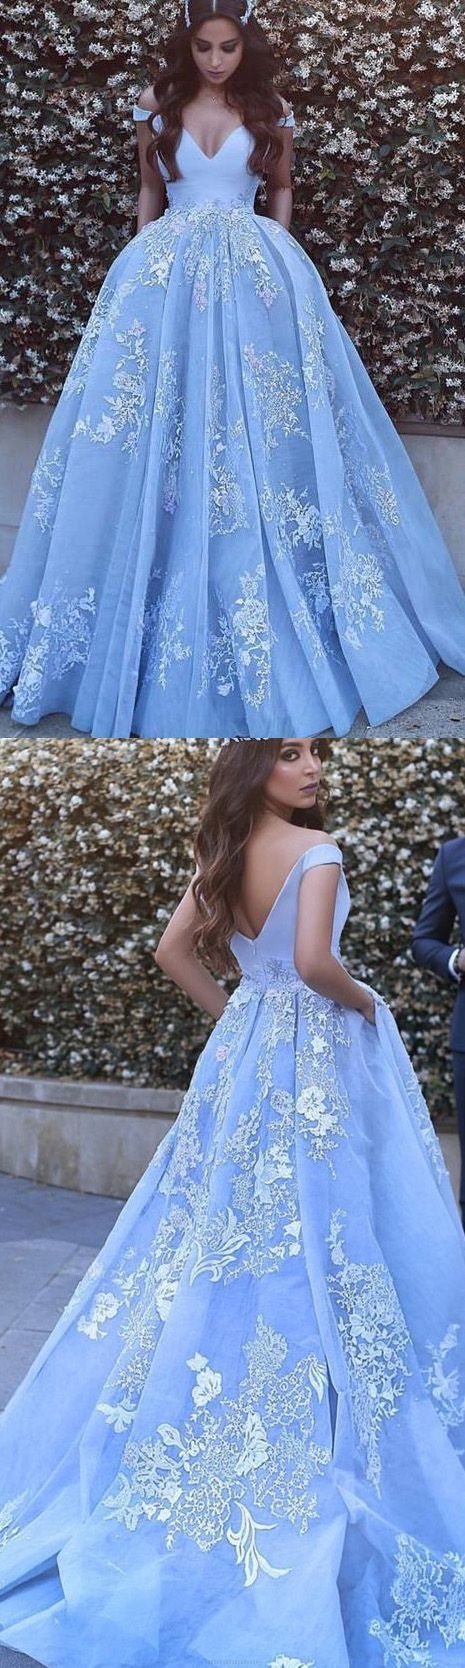 Blue Prom Dresses, Long Prom Dresses